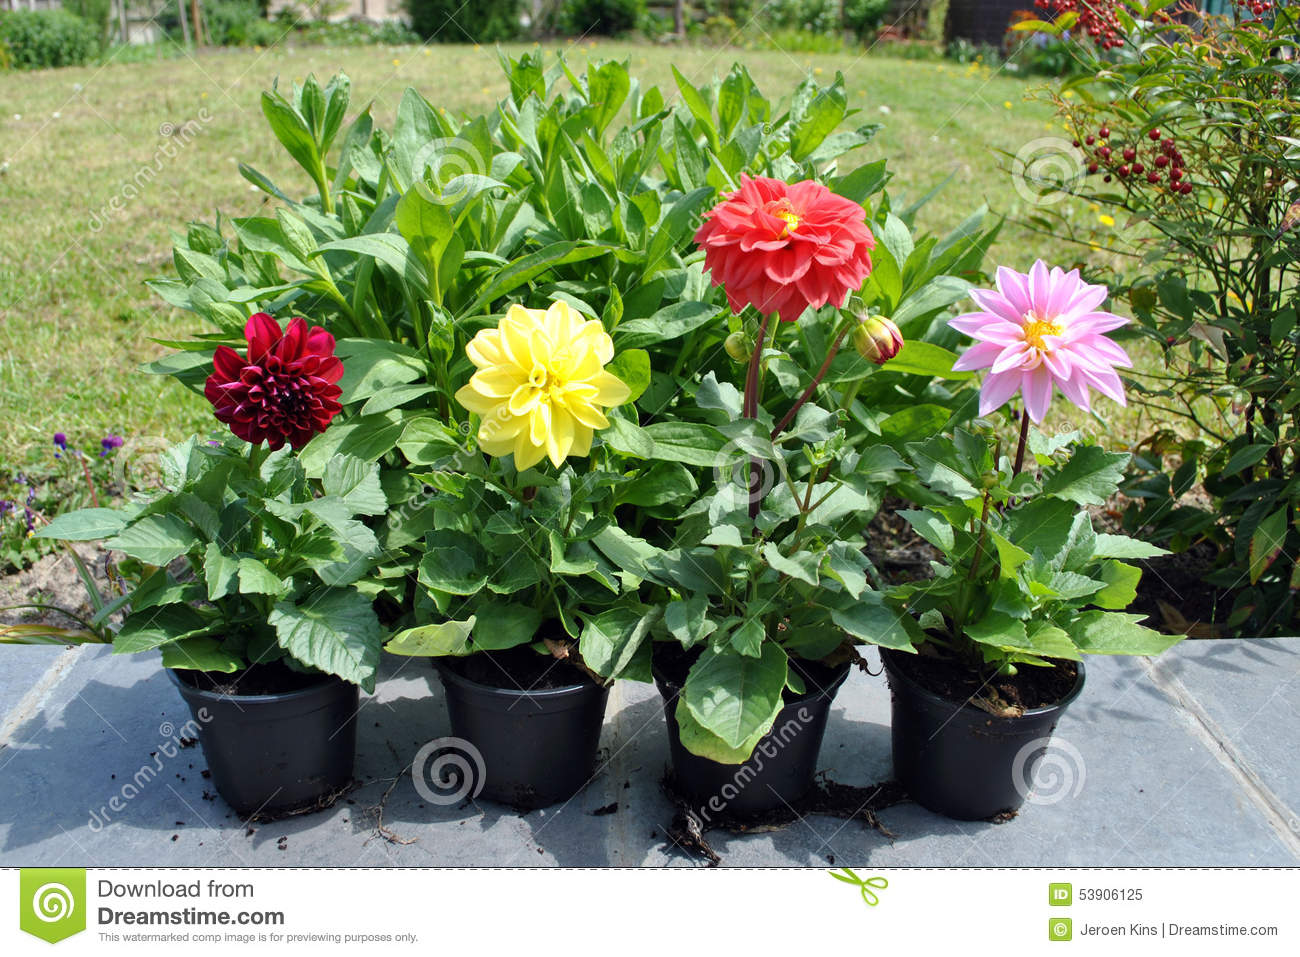 Dahlia Flowers In The Garden Stock Image Image Of Lawn Dahlia 53906125